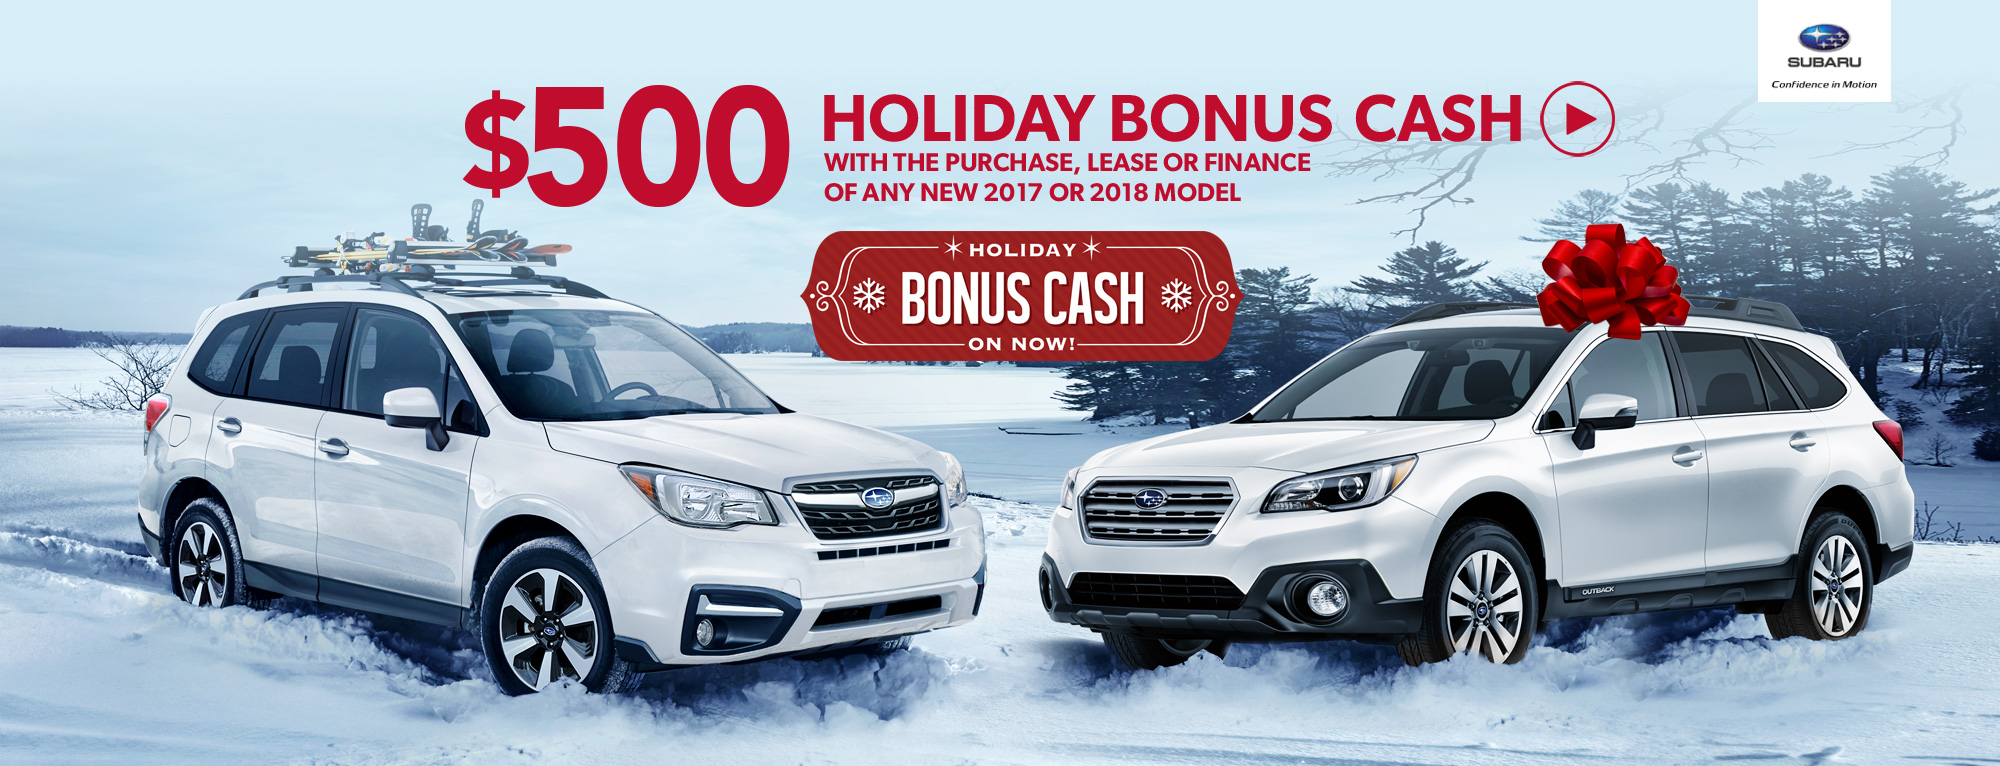 Subaru Holiday Bonus